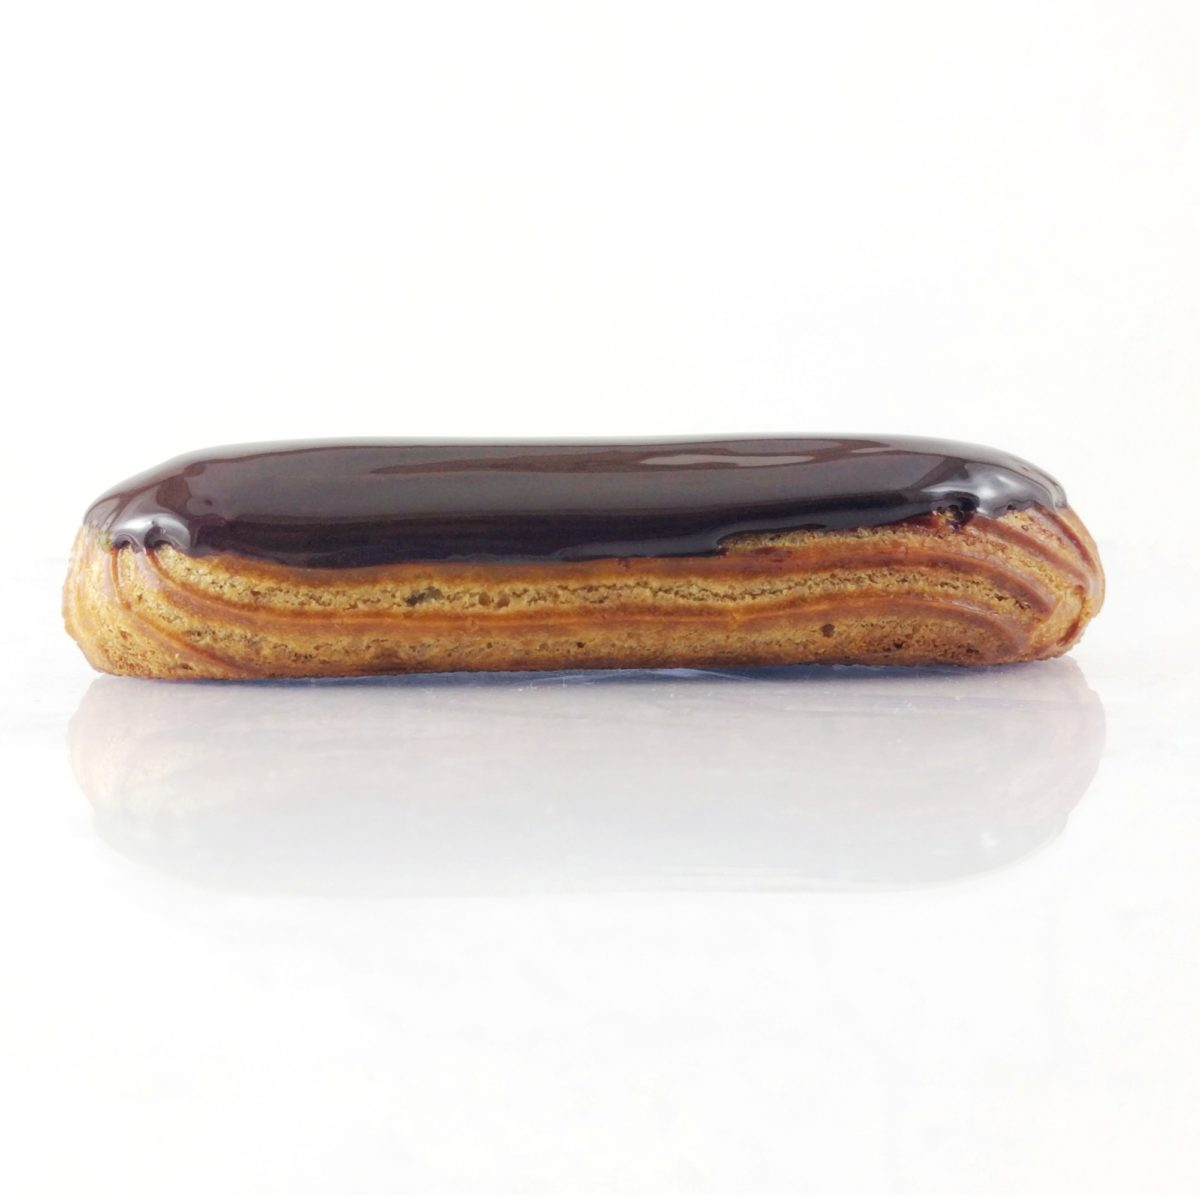 Éclair au chocolat traditionnel